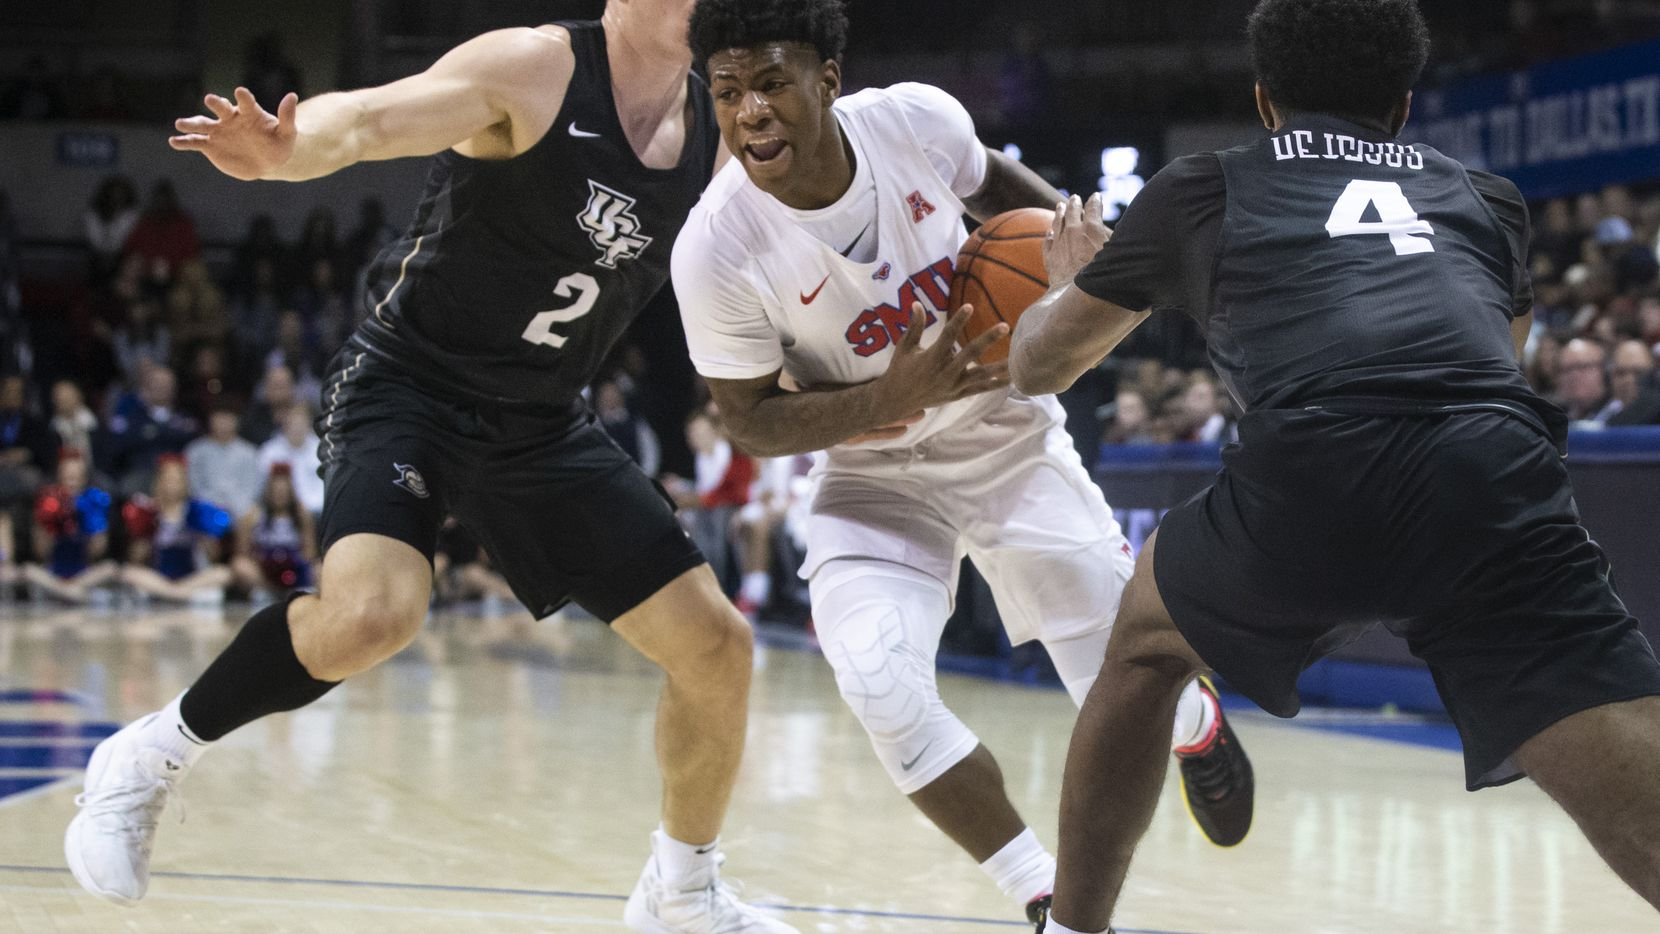 Southern Methodist Mustangs guard Kendric Davis (3) drives past UCF Knights guard Matt Milon (2) in the first half of an NCAA basketball game between the SMU Mustangs and the University of Central Florida Knights at Moody Coliseum in University Park, Texas, on Wednesday, Jan. 8, 2020.